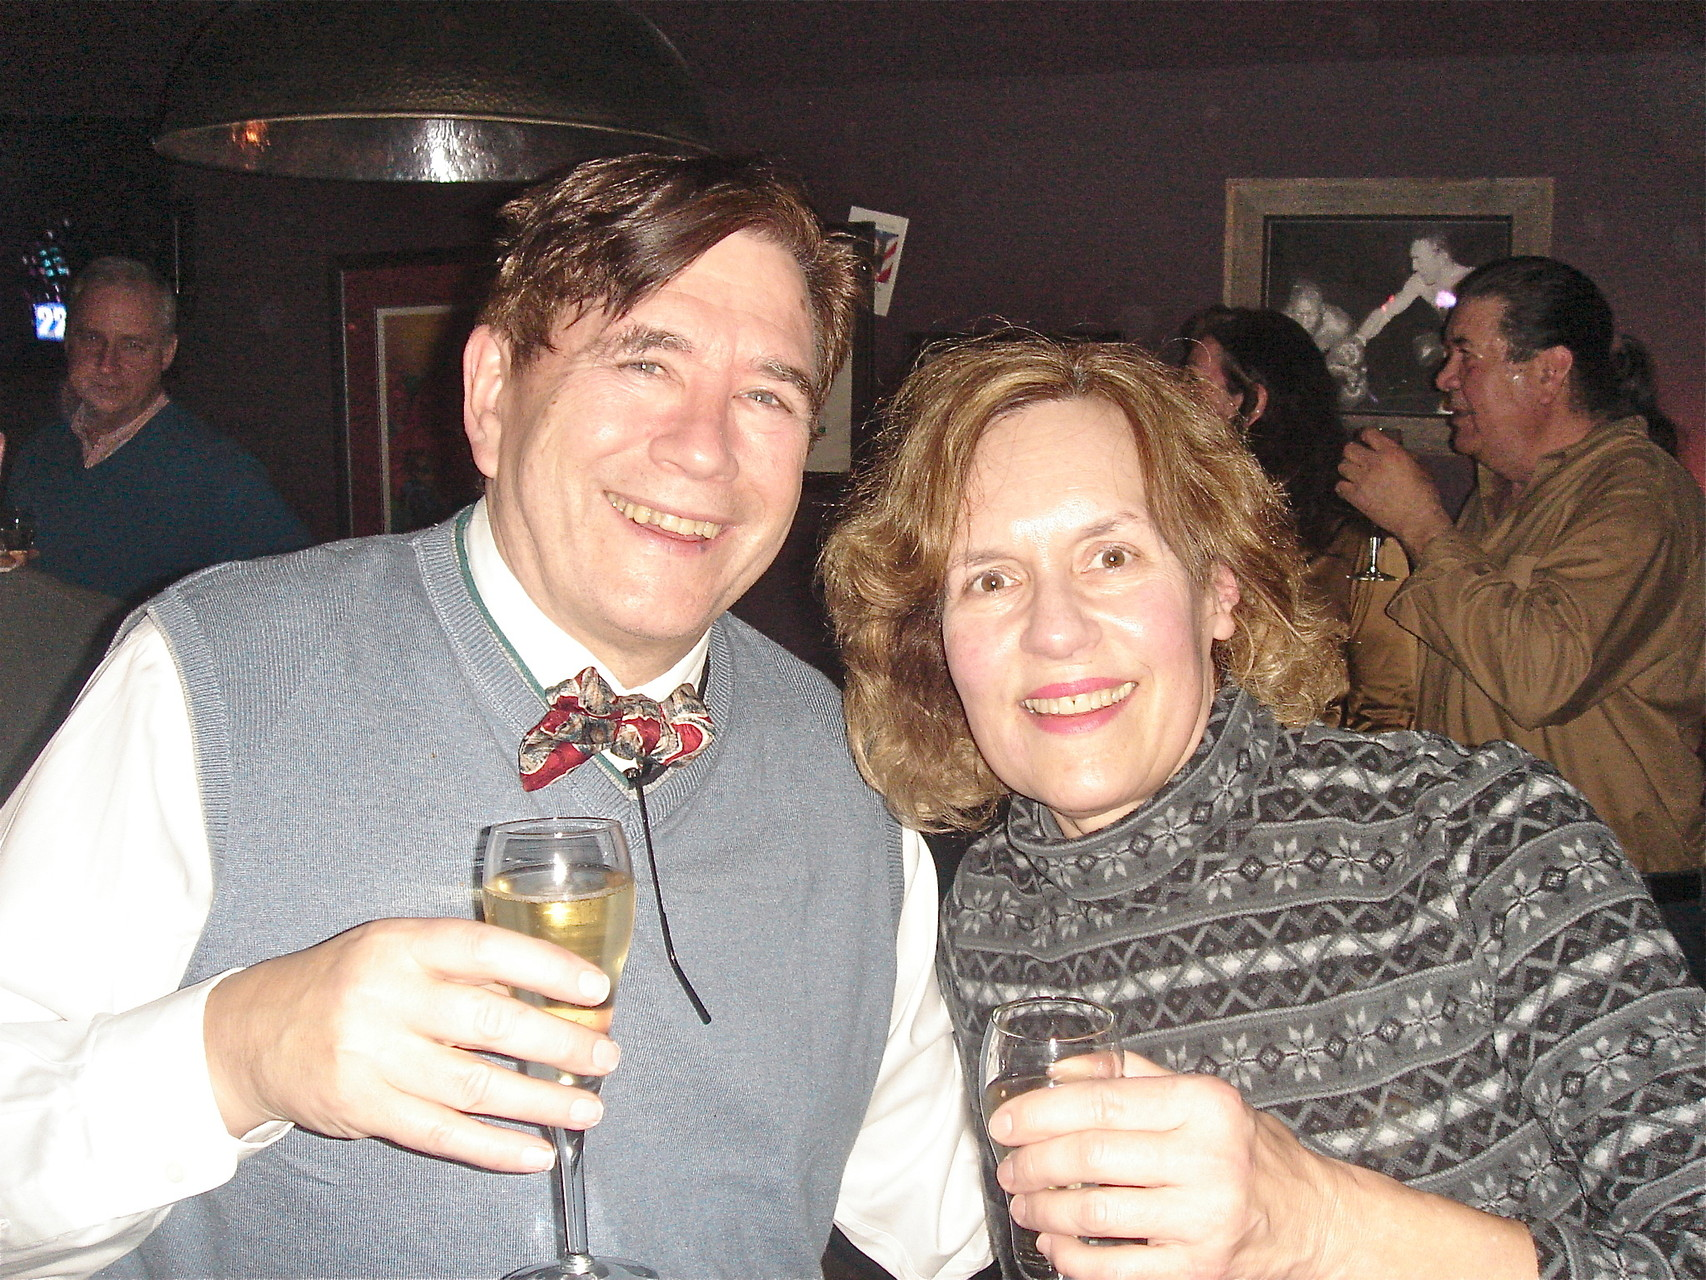 John & Lorraine New Years Eve, 2014, The Ridge Tavern, Chittenango, NY near Syracuse